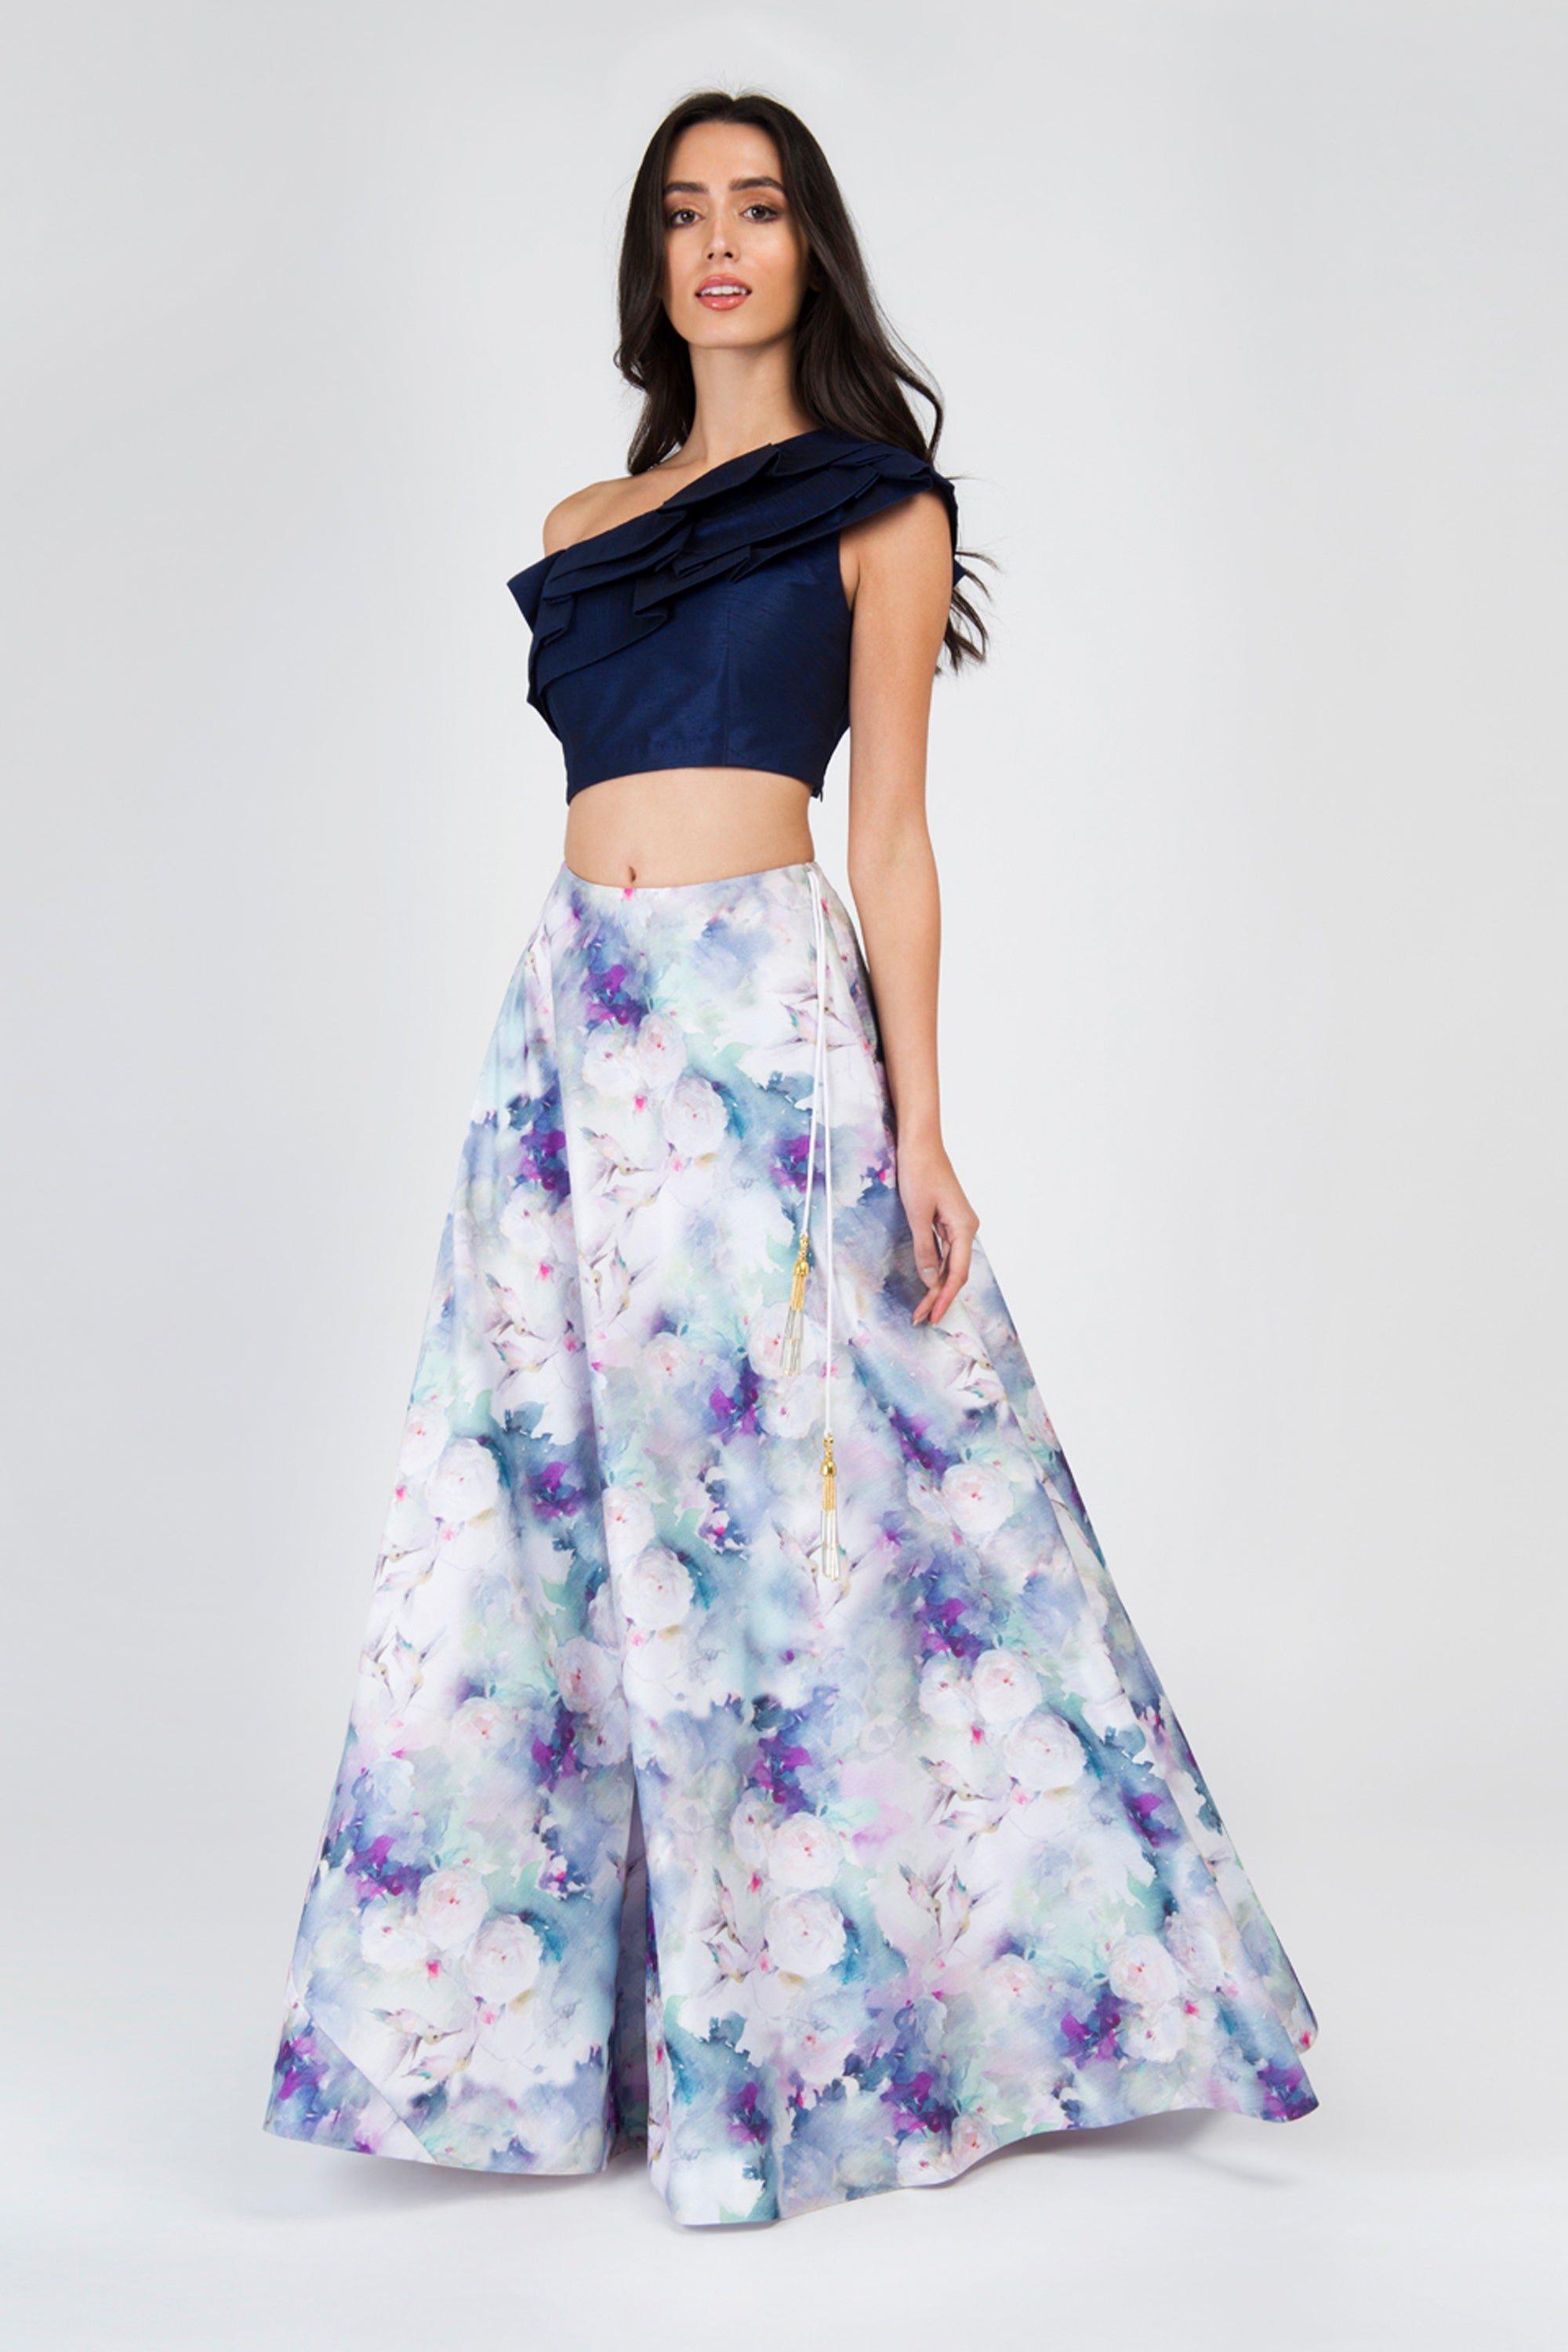 Off One Shoulder Navy Crop Top With Humming Bird Print Round Flare Skirt Lehenga Set FRONT